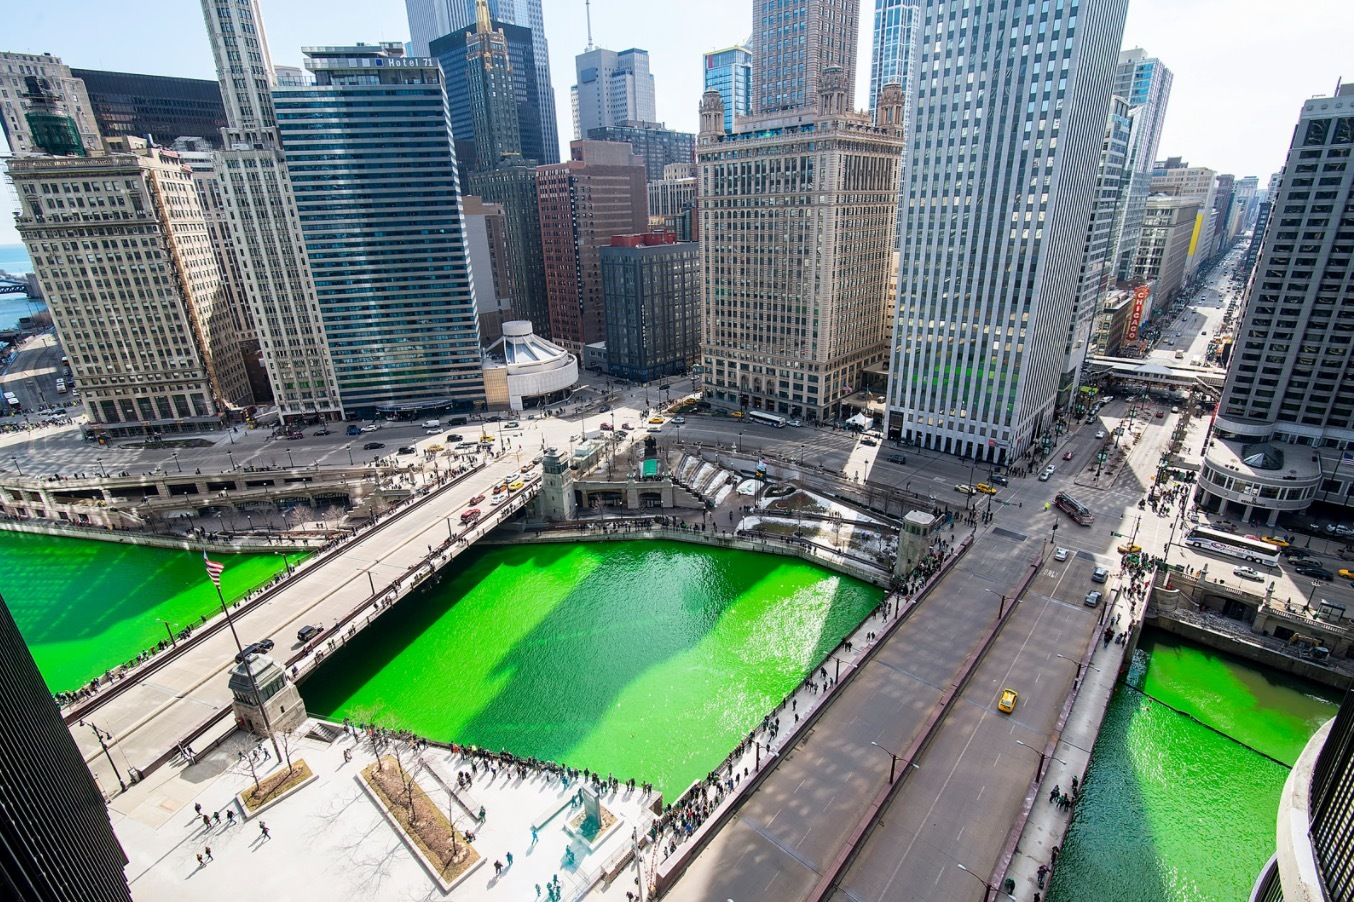 Each year, the Chicago River is dyed green for St. Patrick's Day.